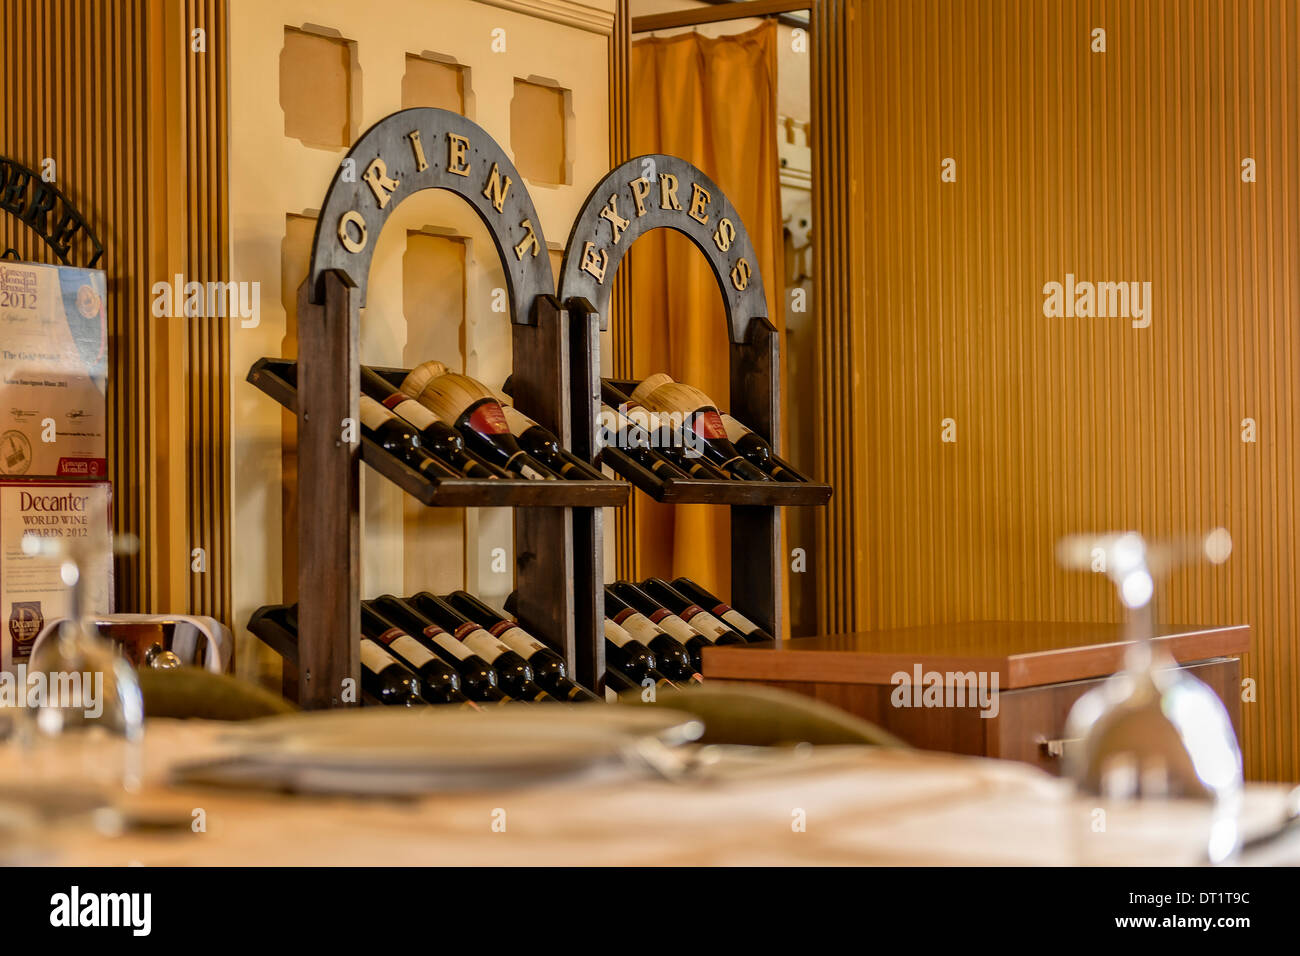 A wine rack in the Sirkeci terminal restaurant. The Orient Express train leaves from this station. - Stock Image